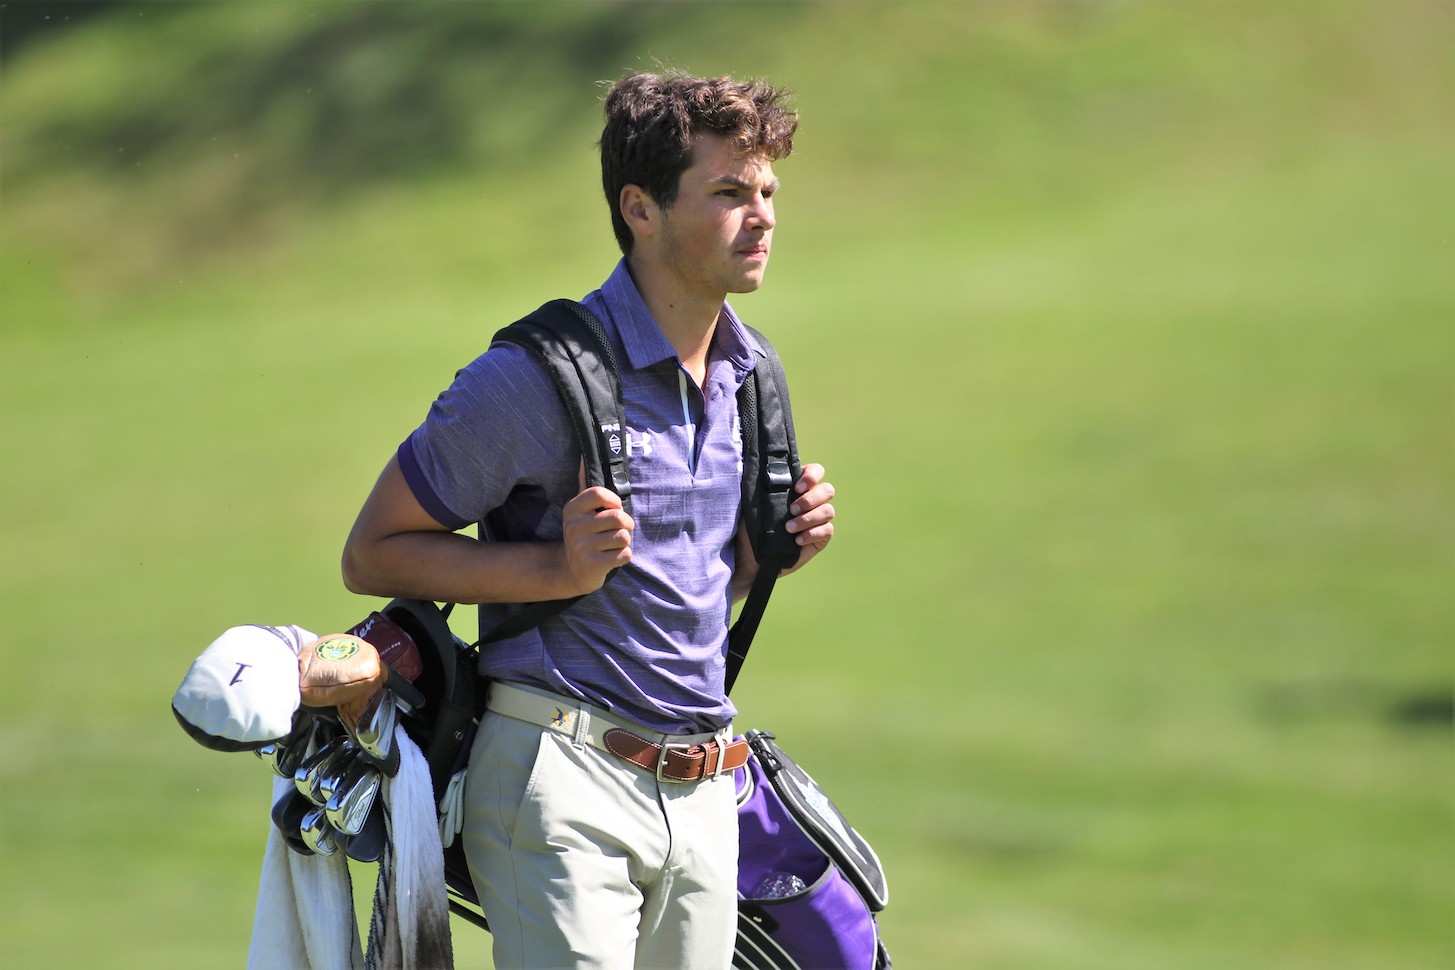 Men's Golf Completes Fall Portion of Schedule at Biondi Memorial Invitational with Third Place Finish